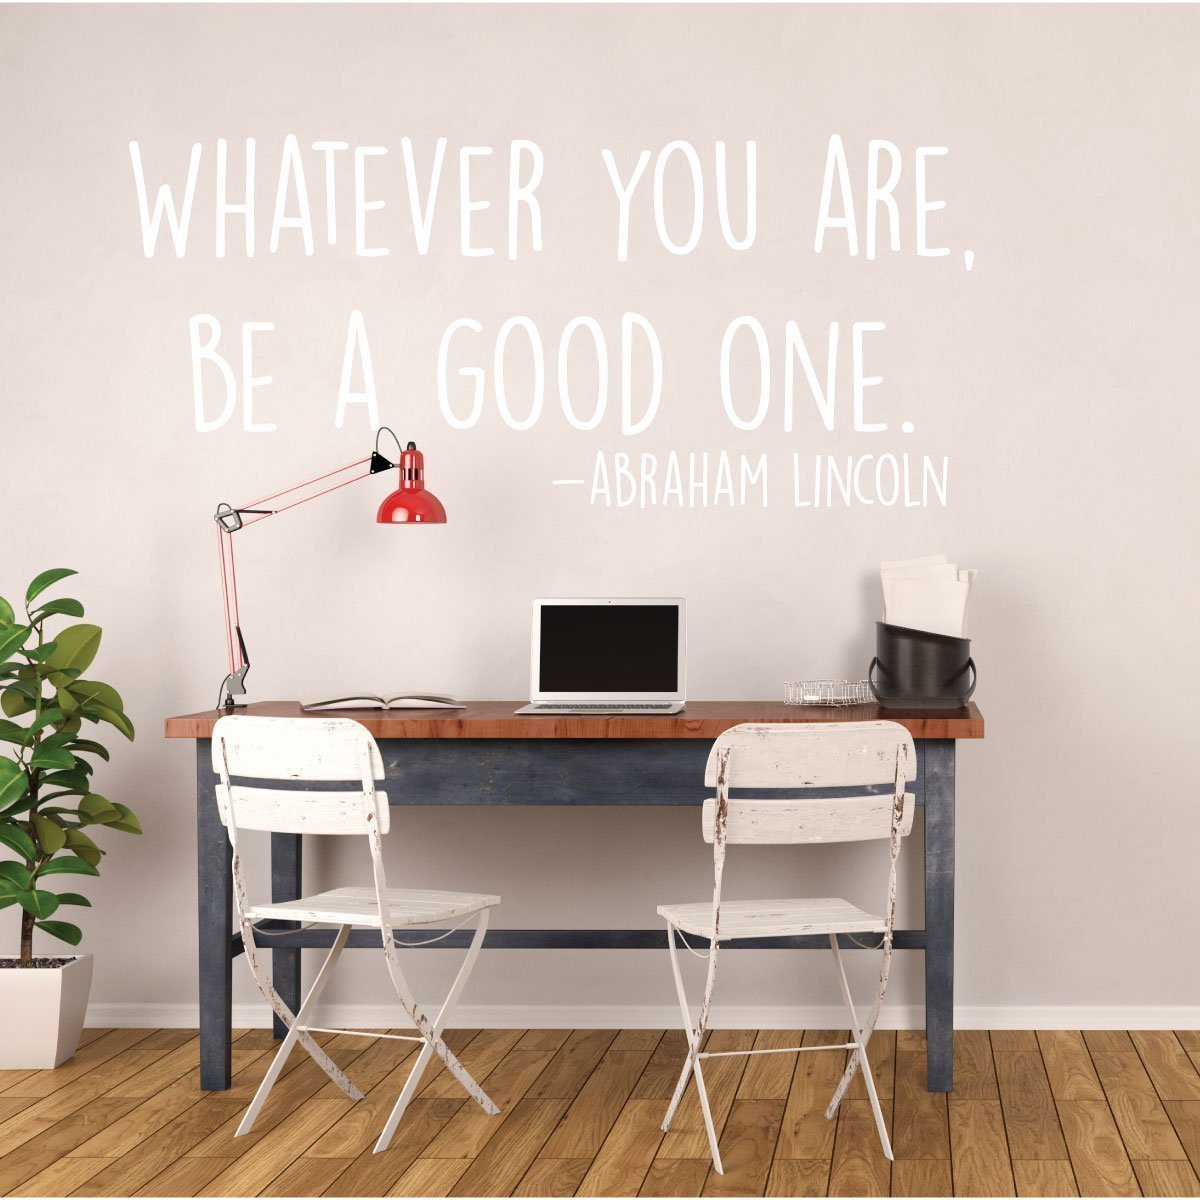 Motivational Quotes - Abraham Lincoln, Whatever You Are Be a Good One Wall Sign Vinyl Decal Home Decoration Inspirational for Teachers Classrooms